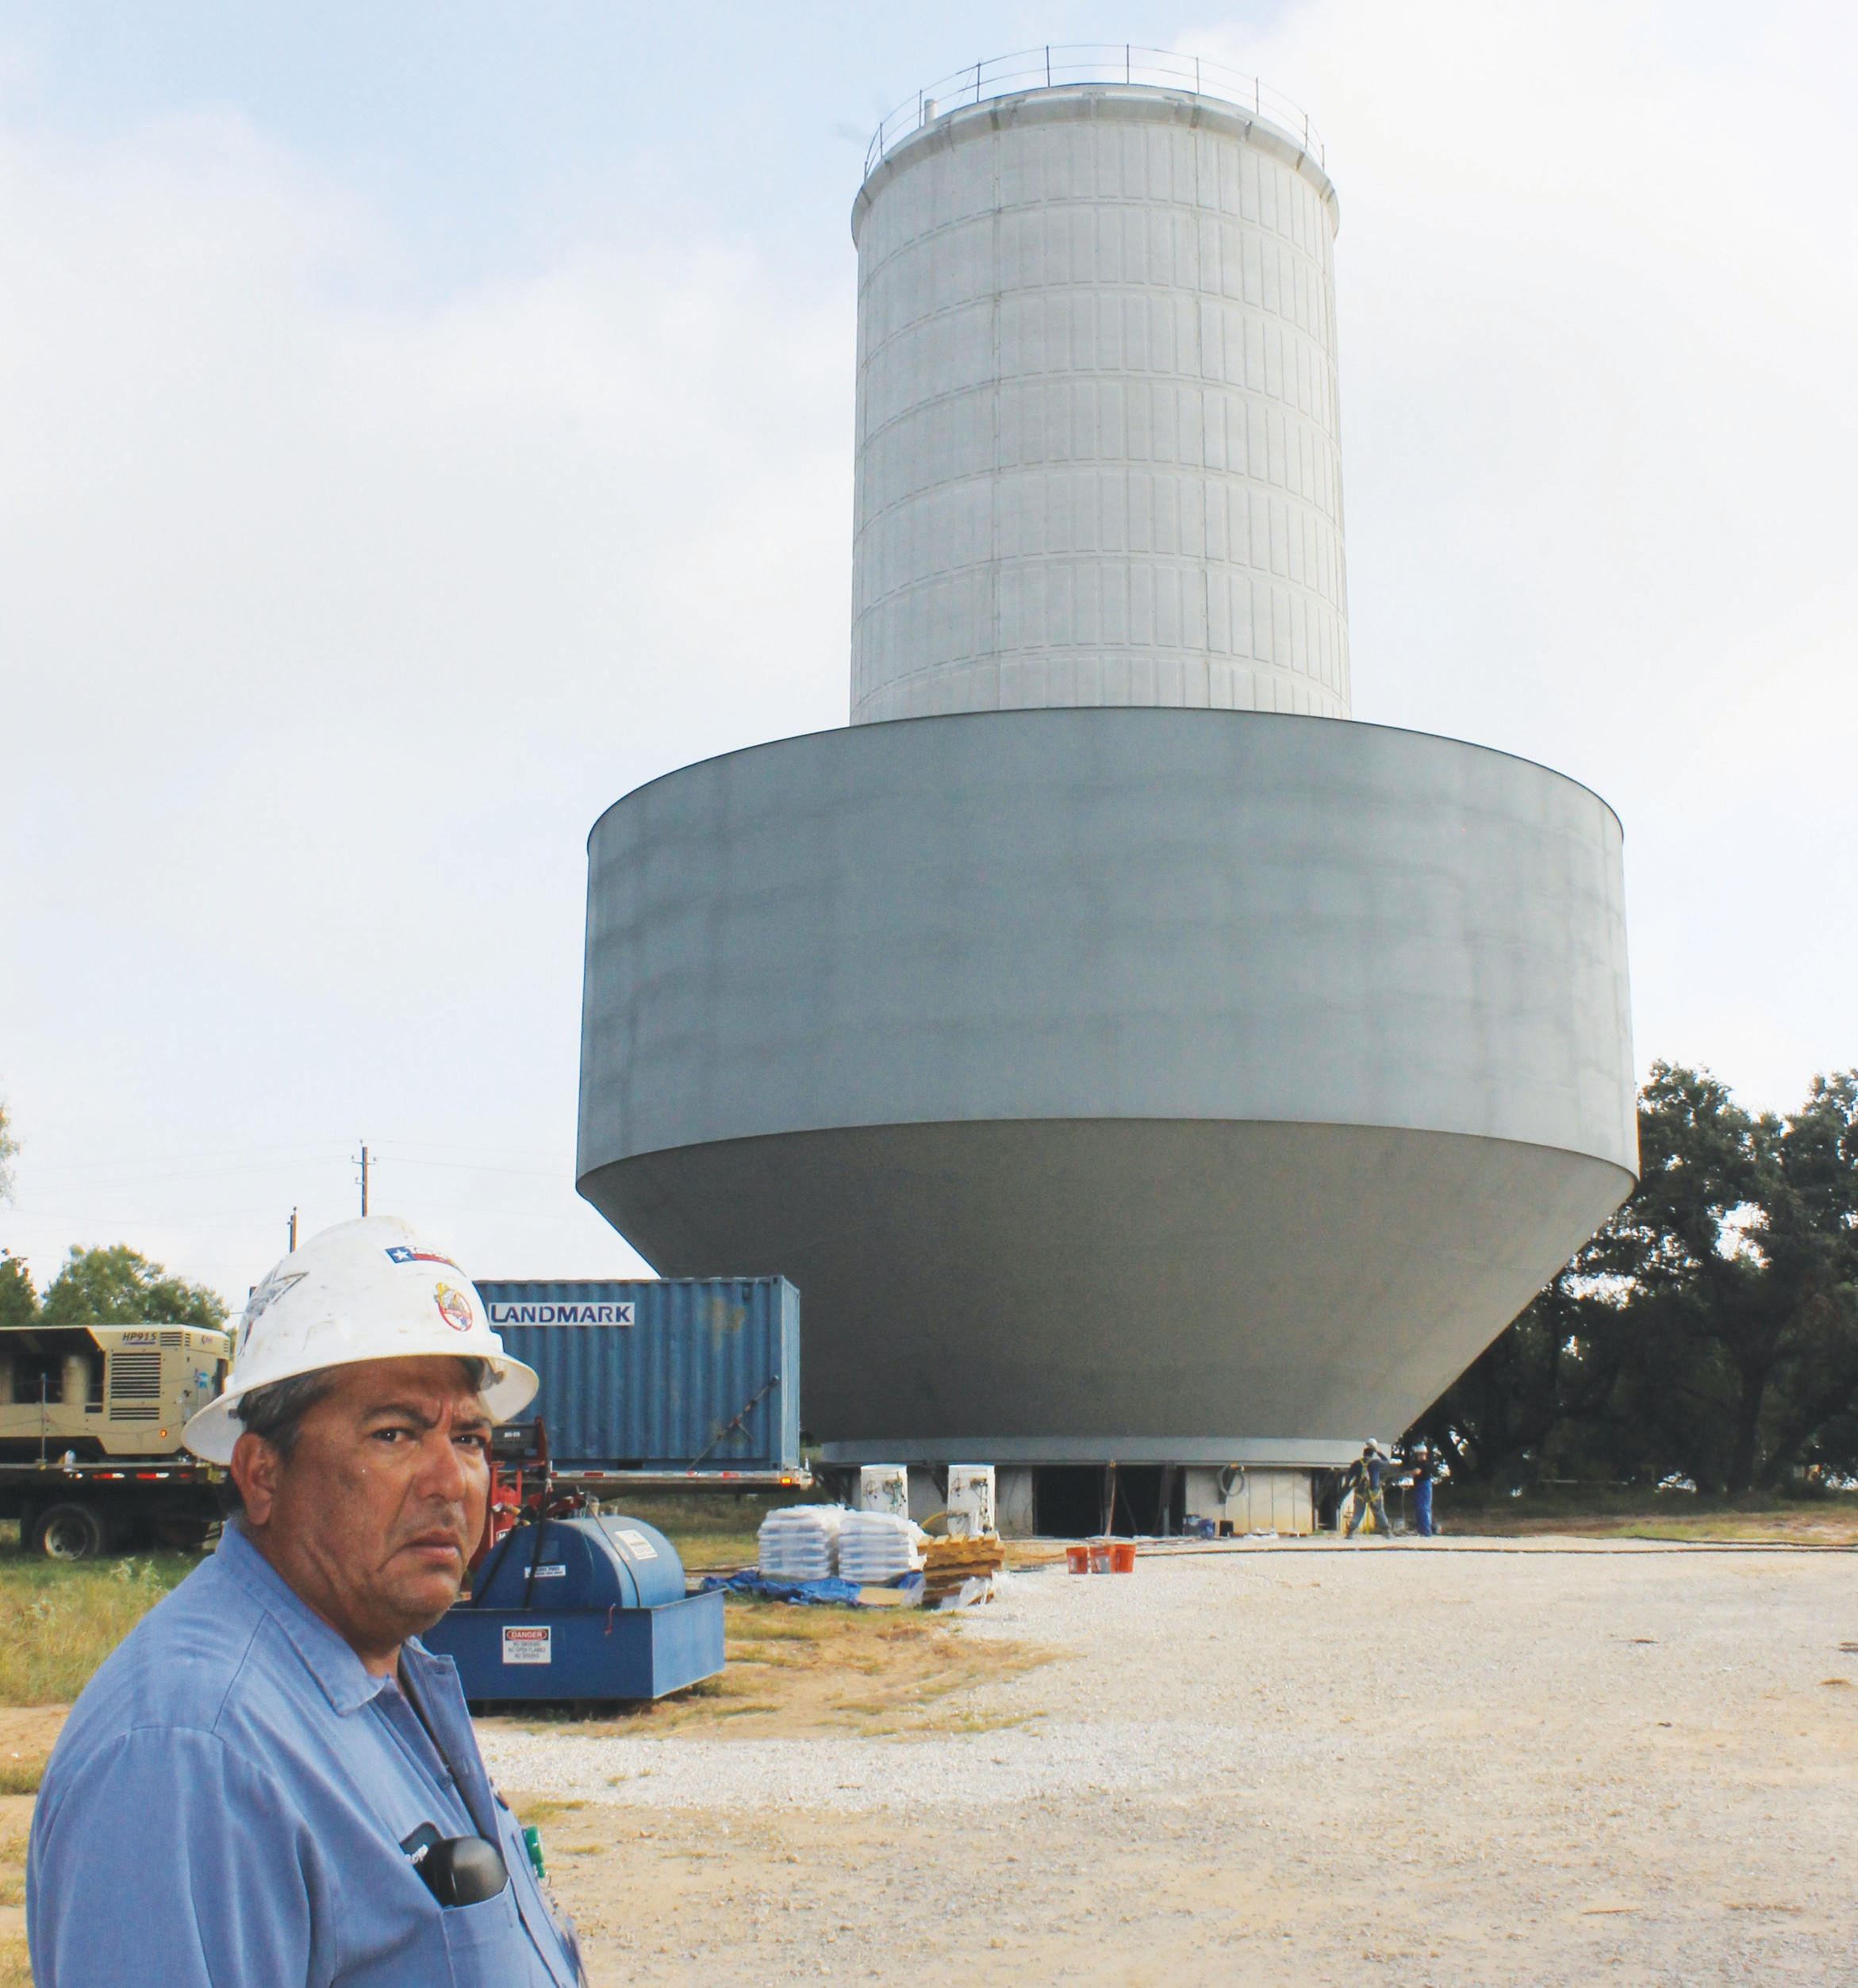 Doroteo Reyna, Pleasanton utility construction foreman, in the foreground of the construction site of the million and a quarter gallon water tower on Crestline. Notice two workmen being dwarfed at the lower right base of the water tank. Upon completion in late August, the tank will be hoisted to the top of the pedestal in small increments that will take from six to eight hours to complete.